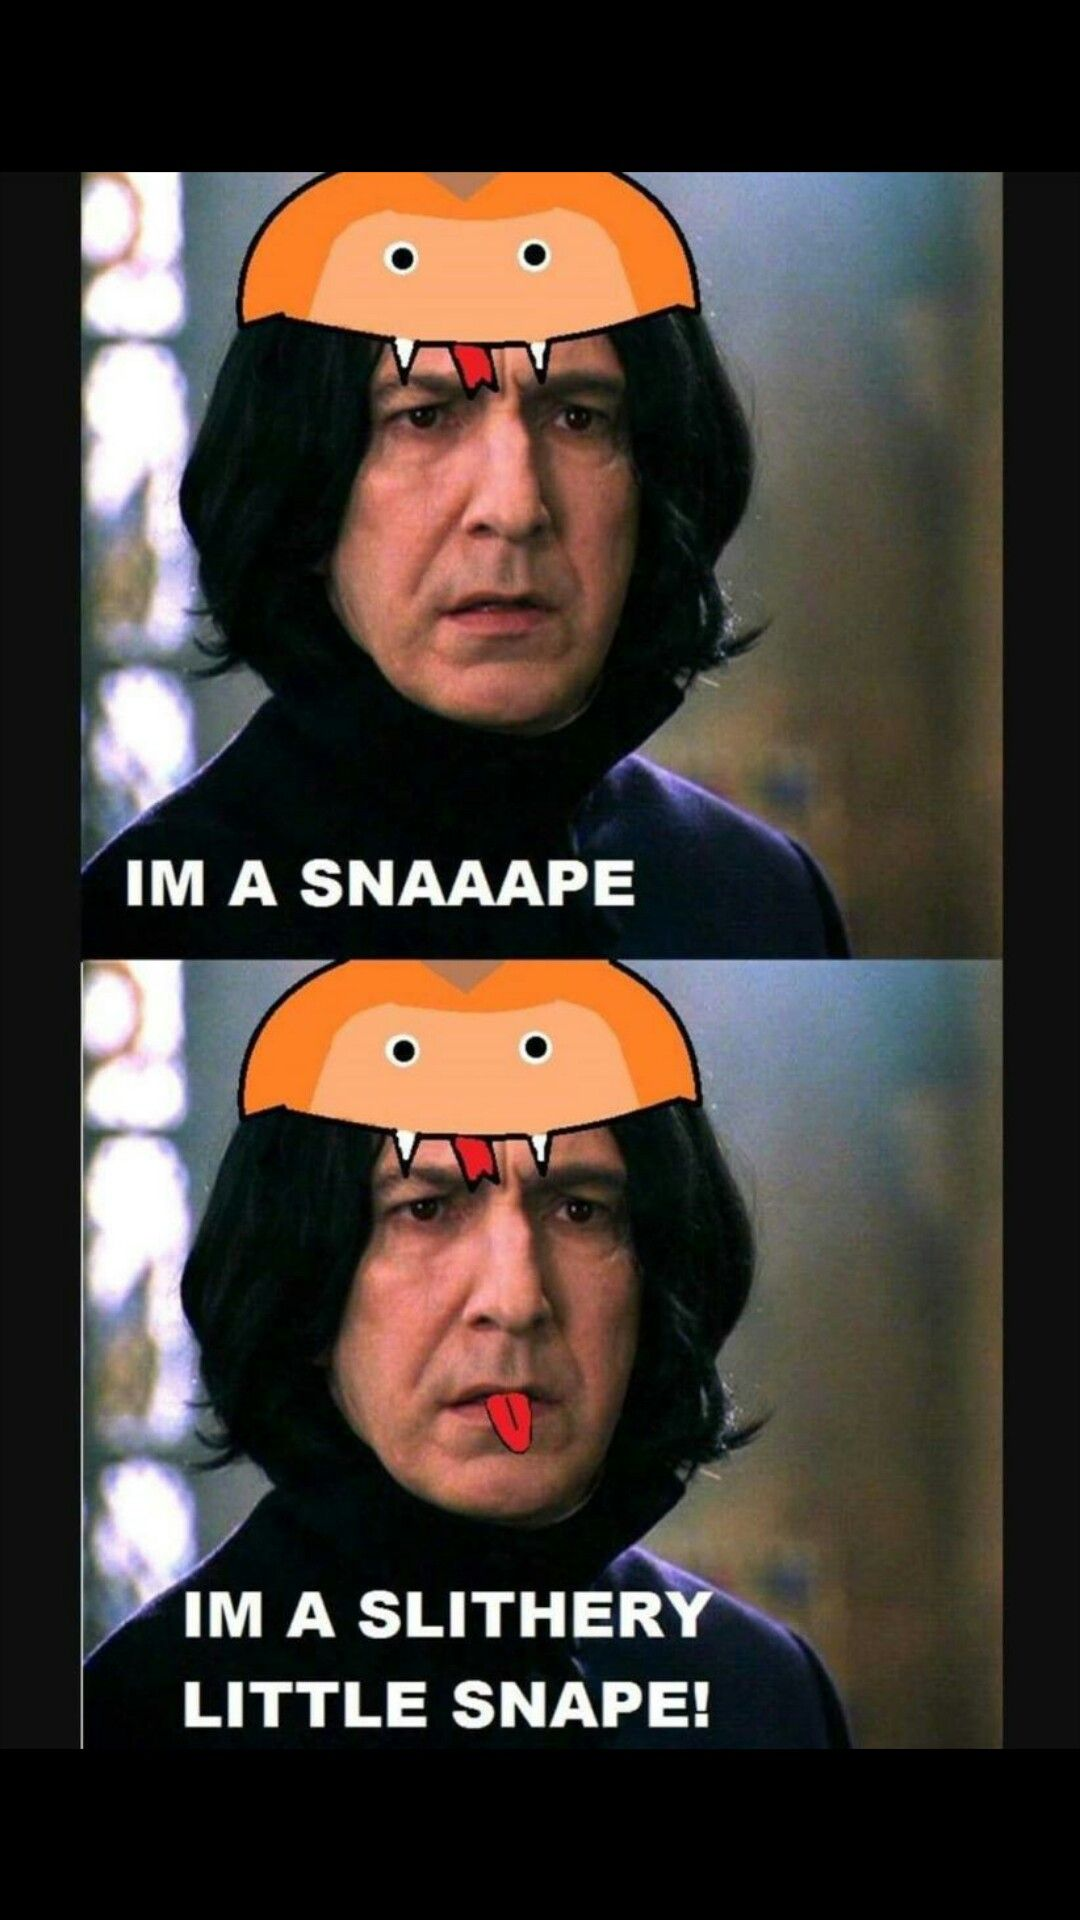 You Have To Watch The Video I M A Snake On Youtube To Get This Harry Potter Cosplay Harry Potter Memes Harry Potter Funny